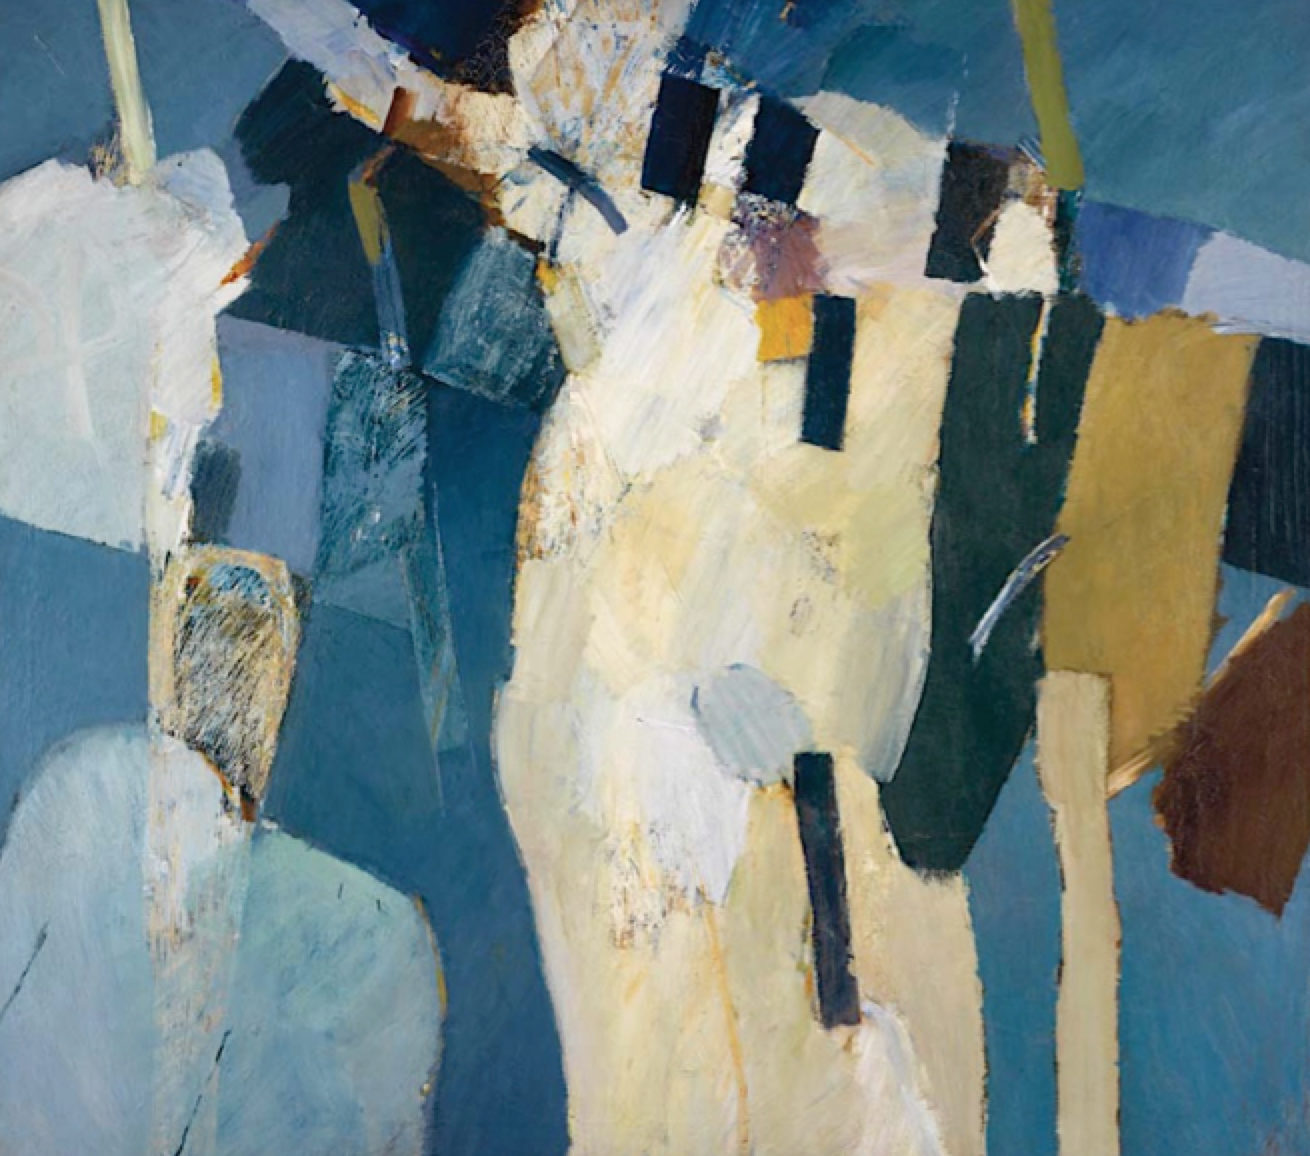 SIXTH ASSEMBLY OF FIGURES, 1962